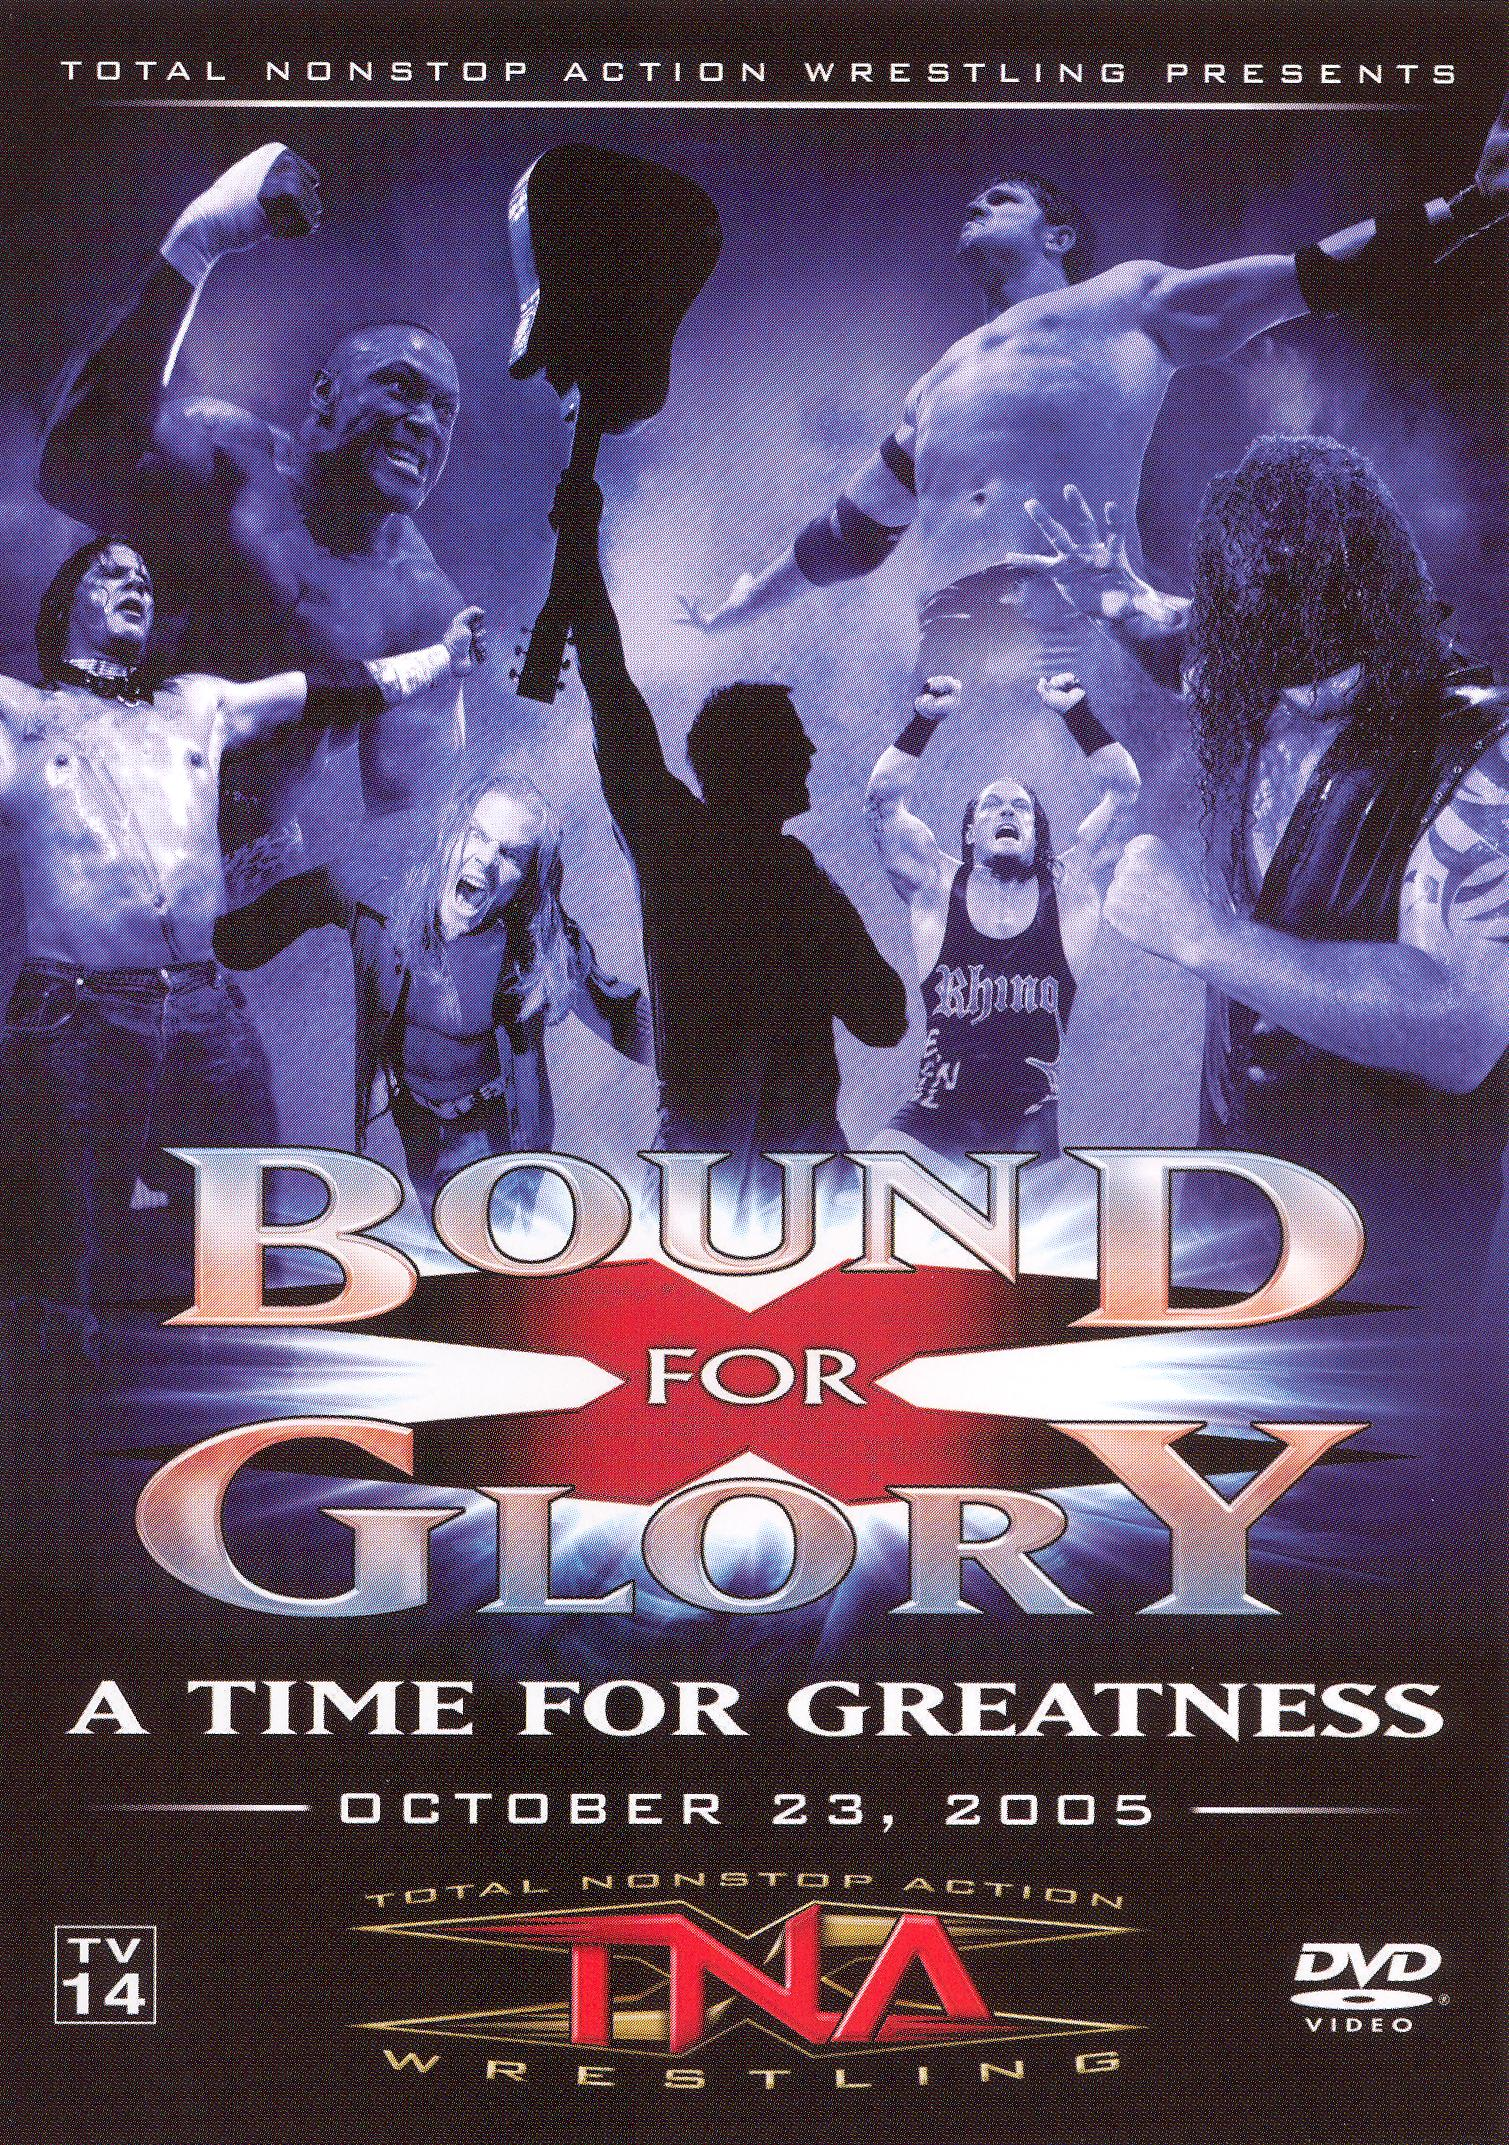 TNA Wrestling: Bound for Glory - A Time for Greatness